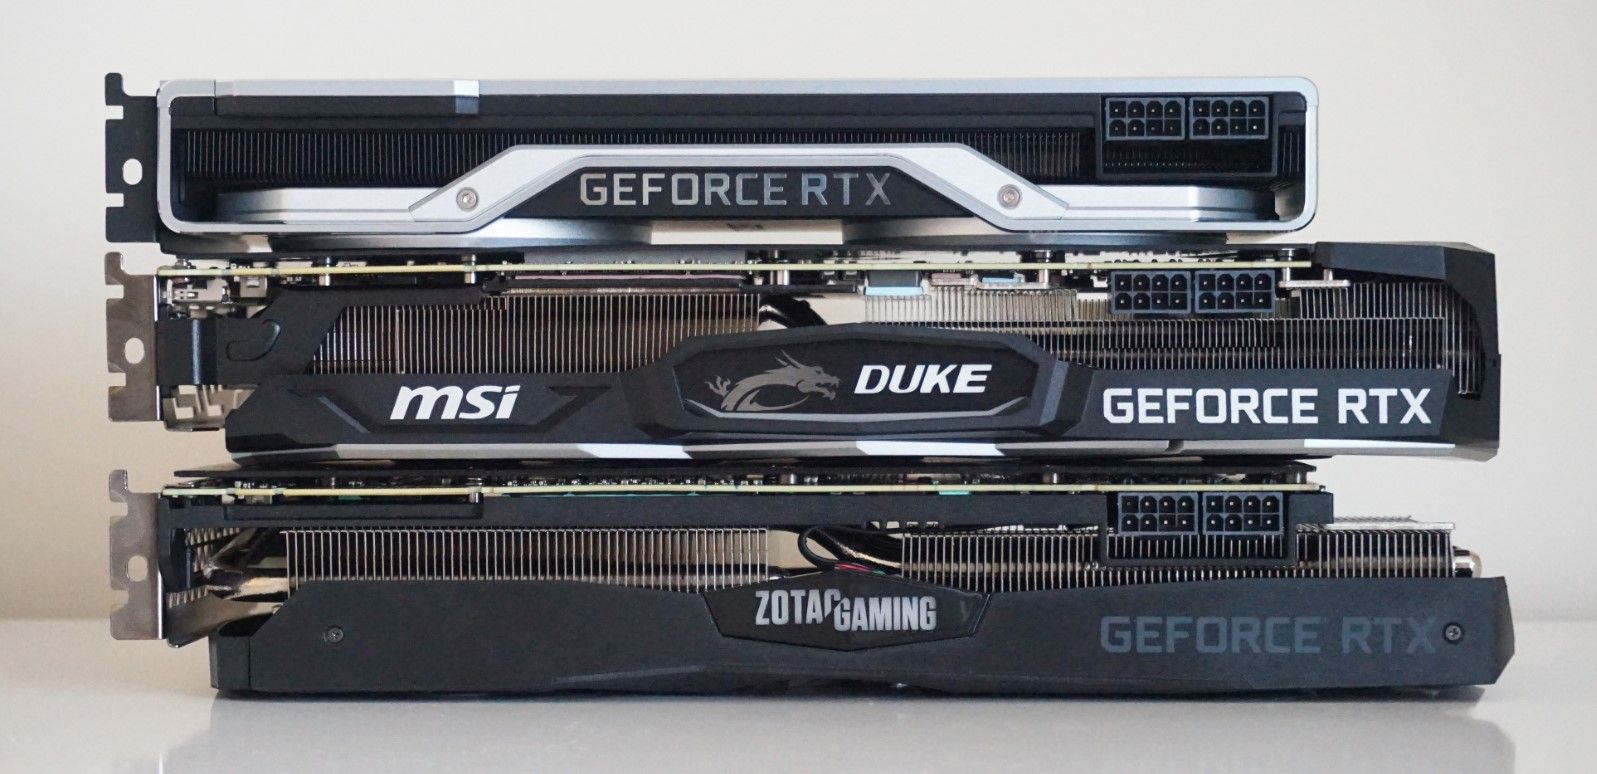 Comparing graphics card sizes